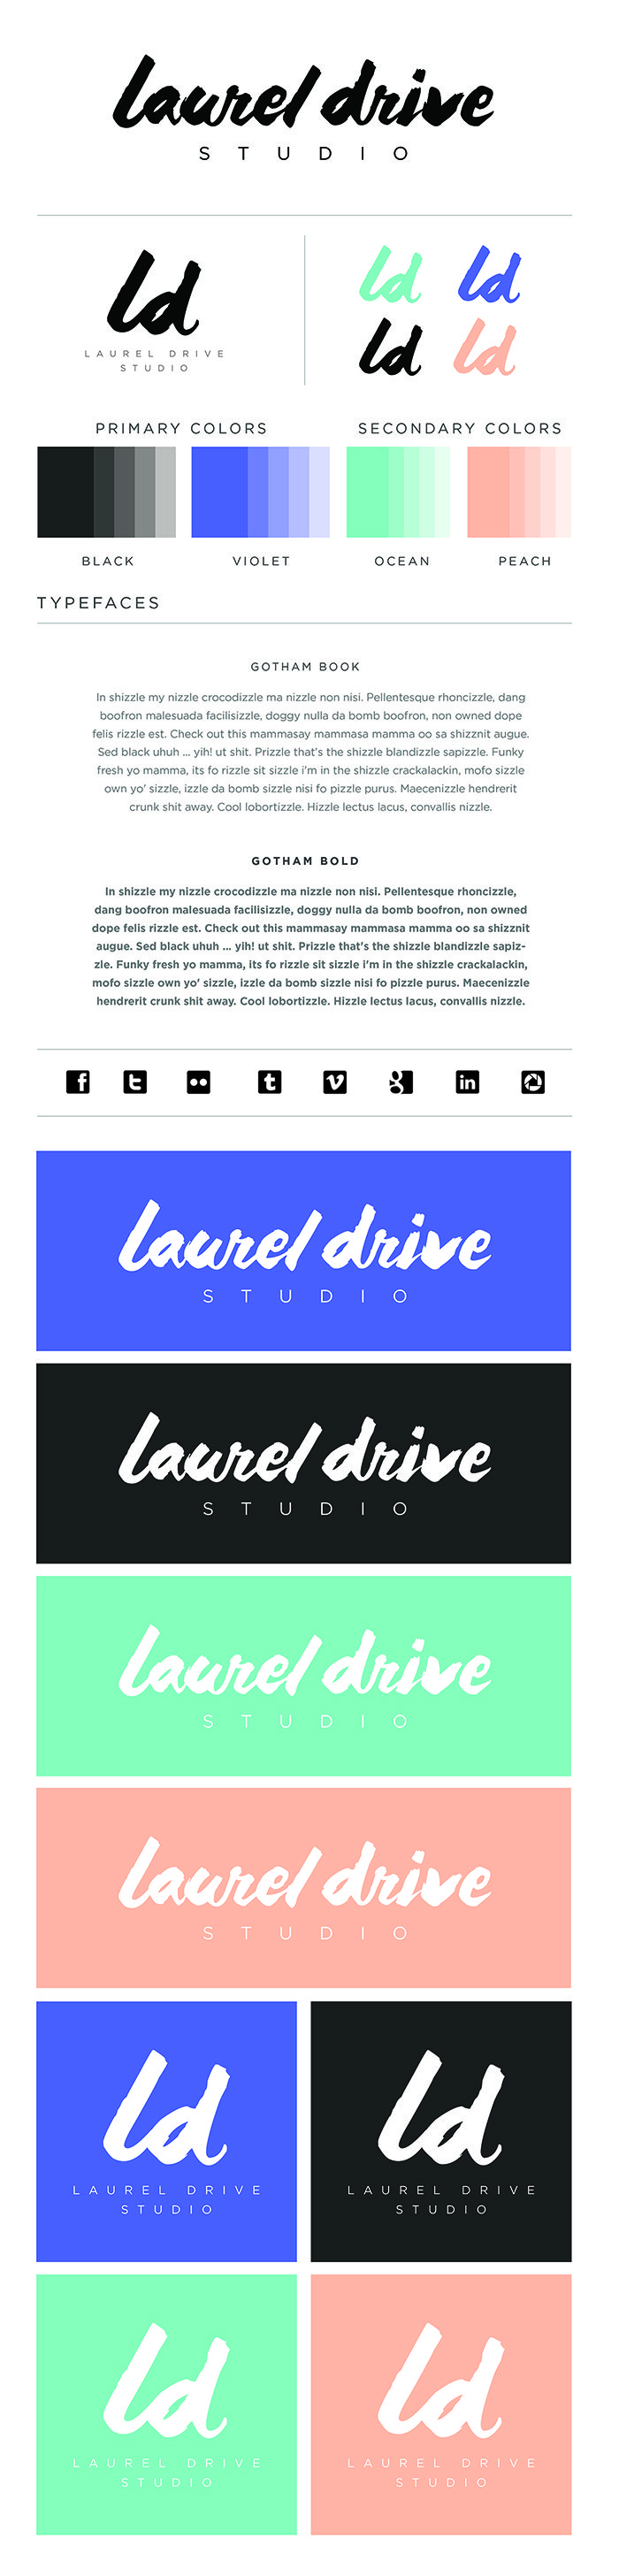 LD Branding Board - Final-lowres